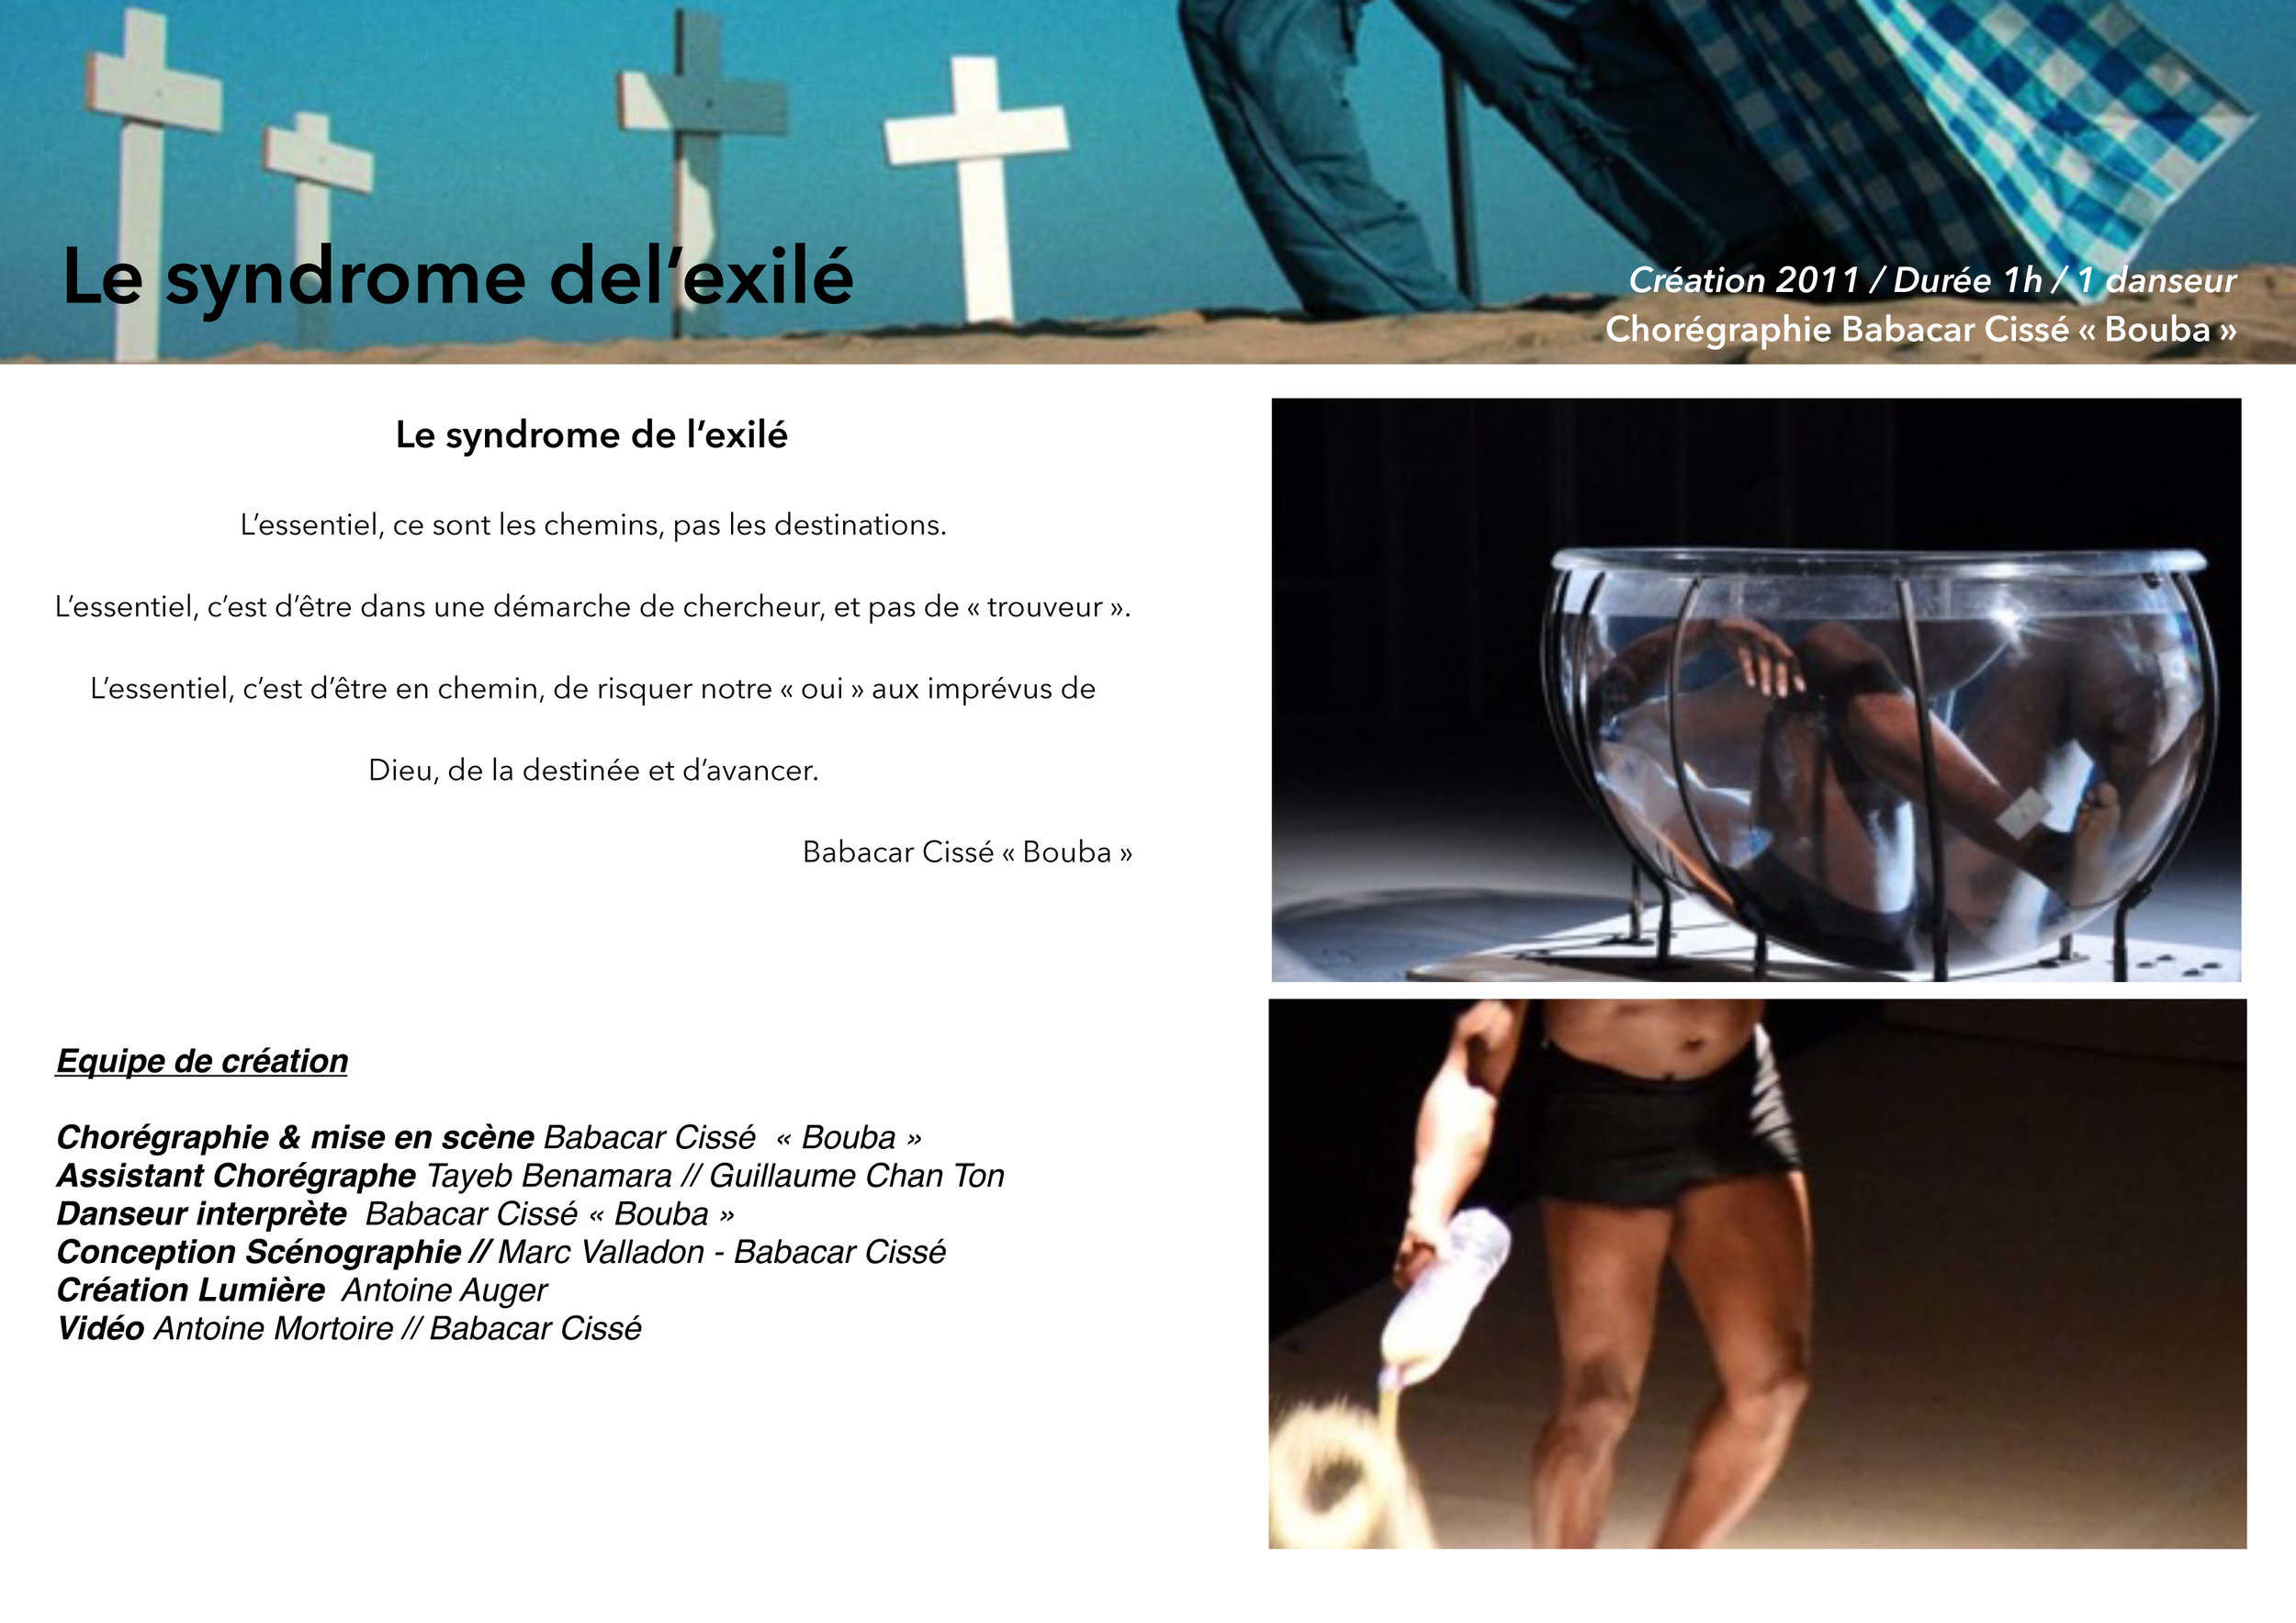 fiche internet site as crew le syndrome de lexile-1.jpg